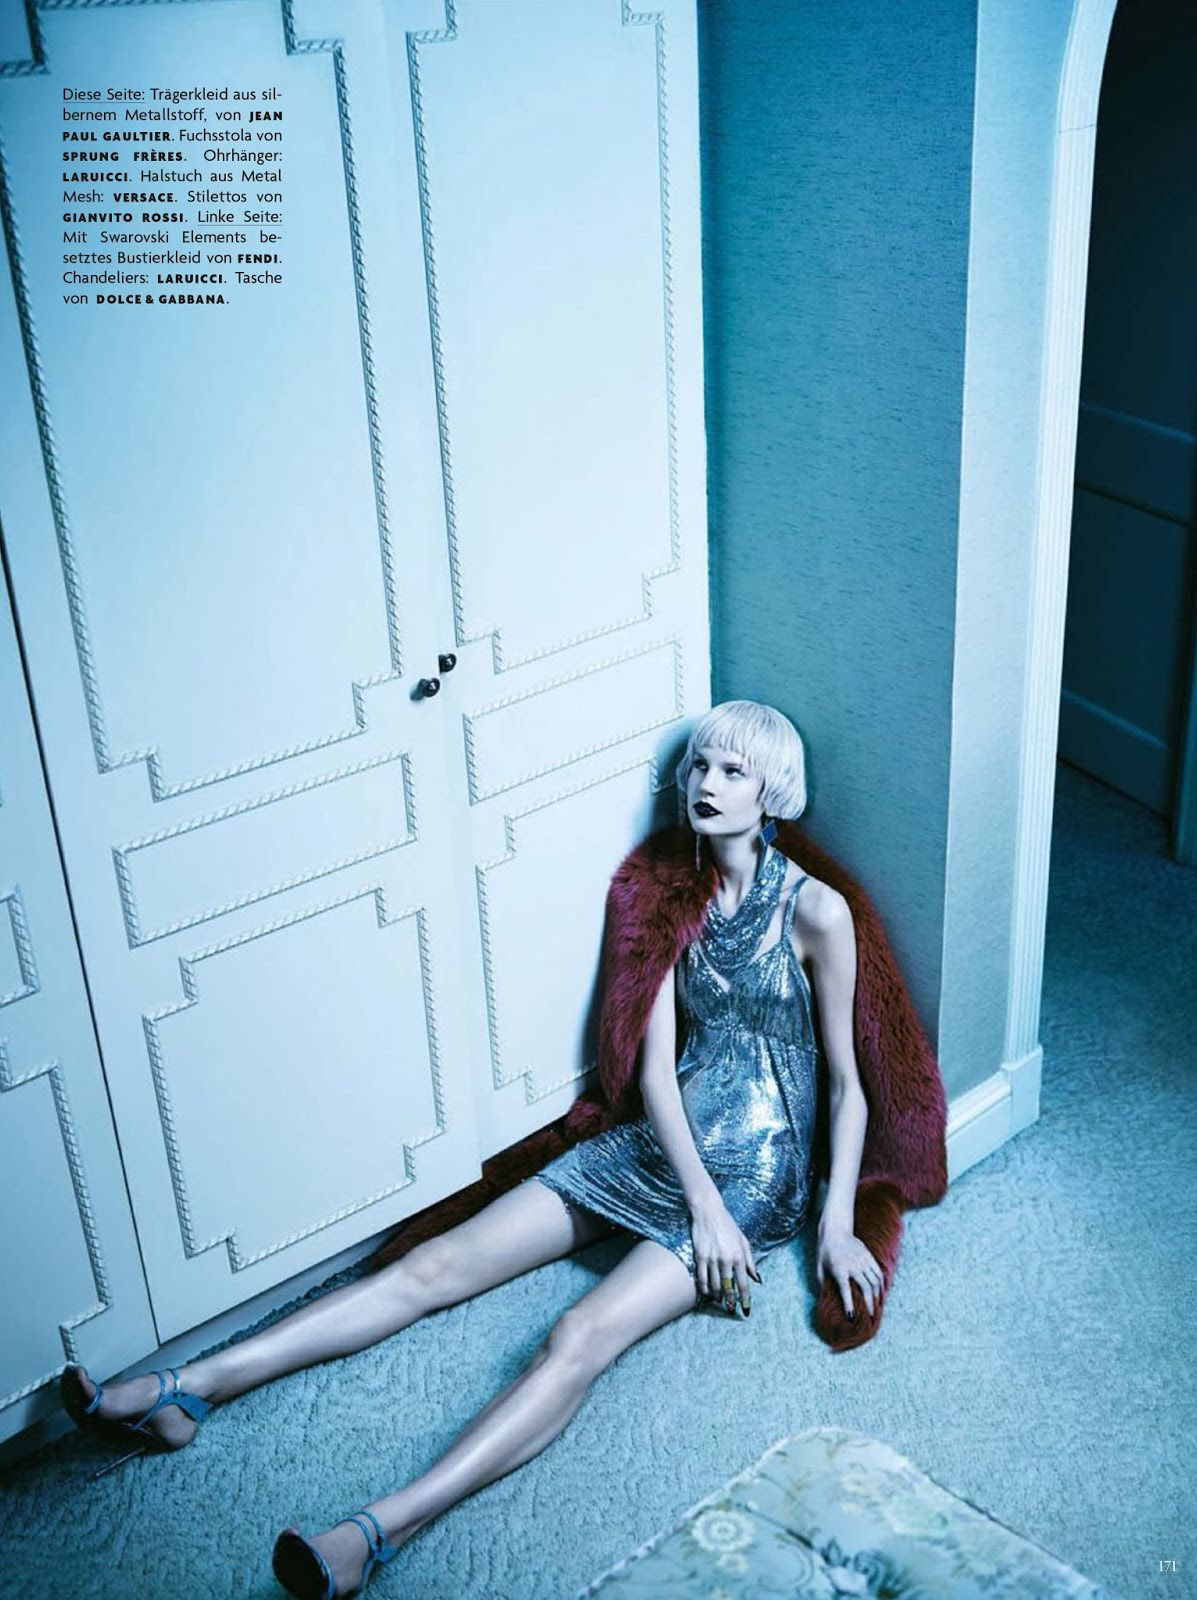 """collections-from-vogue: COLLECTION #227: Elisabeth Erm in """"Scheinwerfer"""" by Emma Summerton for Vogue Germany, April 2014"""